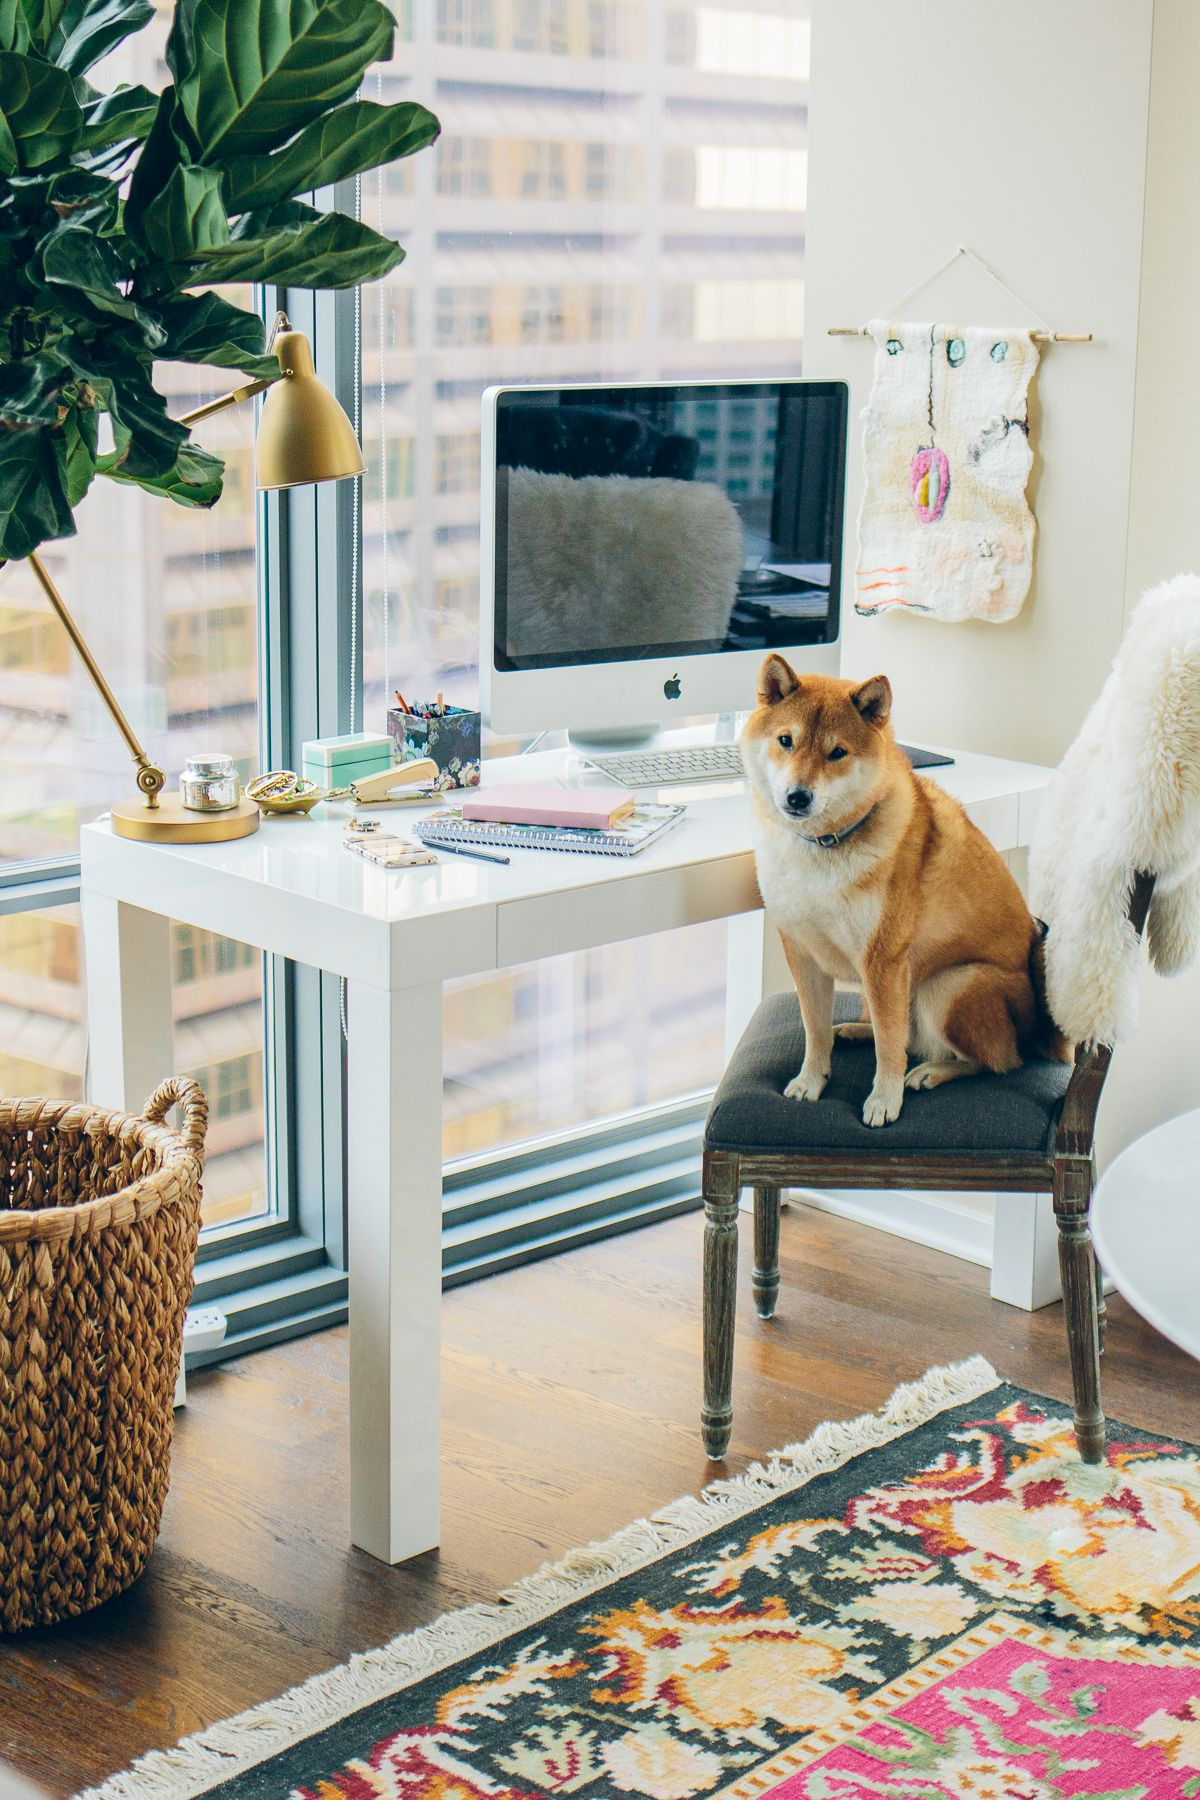 How To Create An Inspiring Workspace Workspace Inspiration